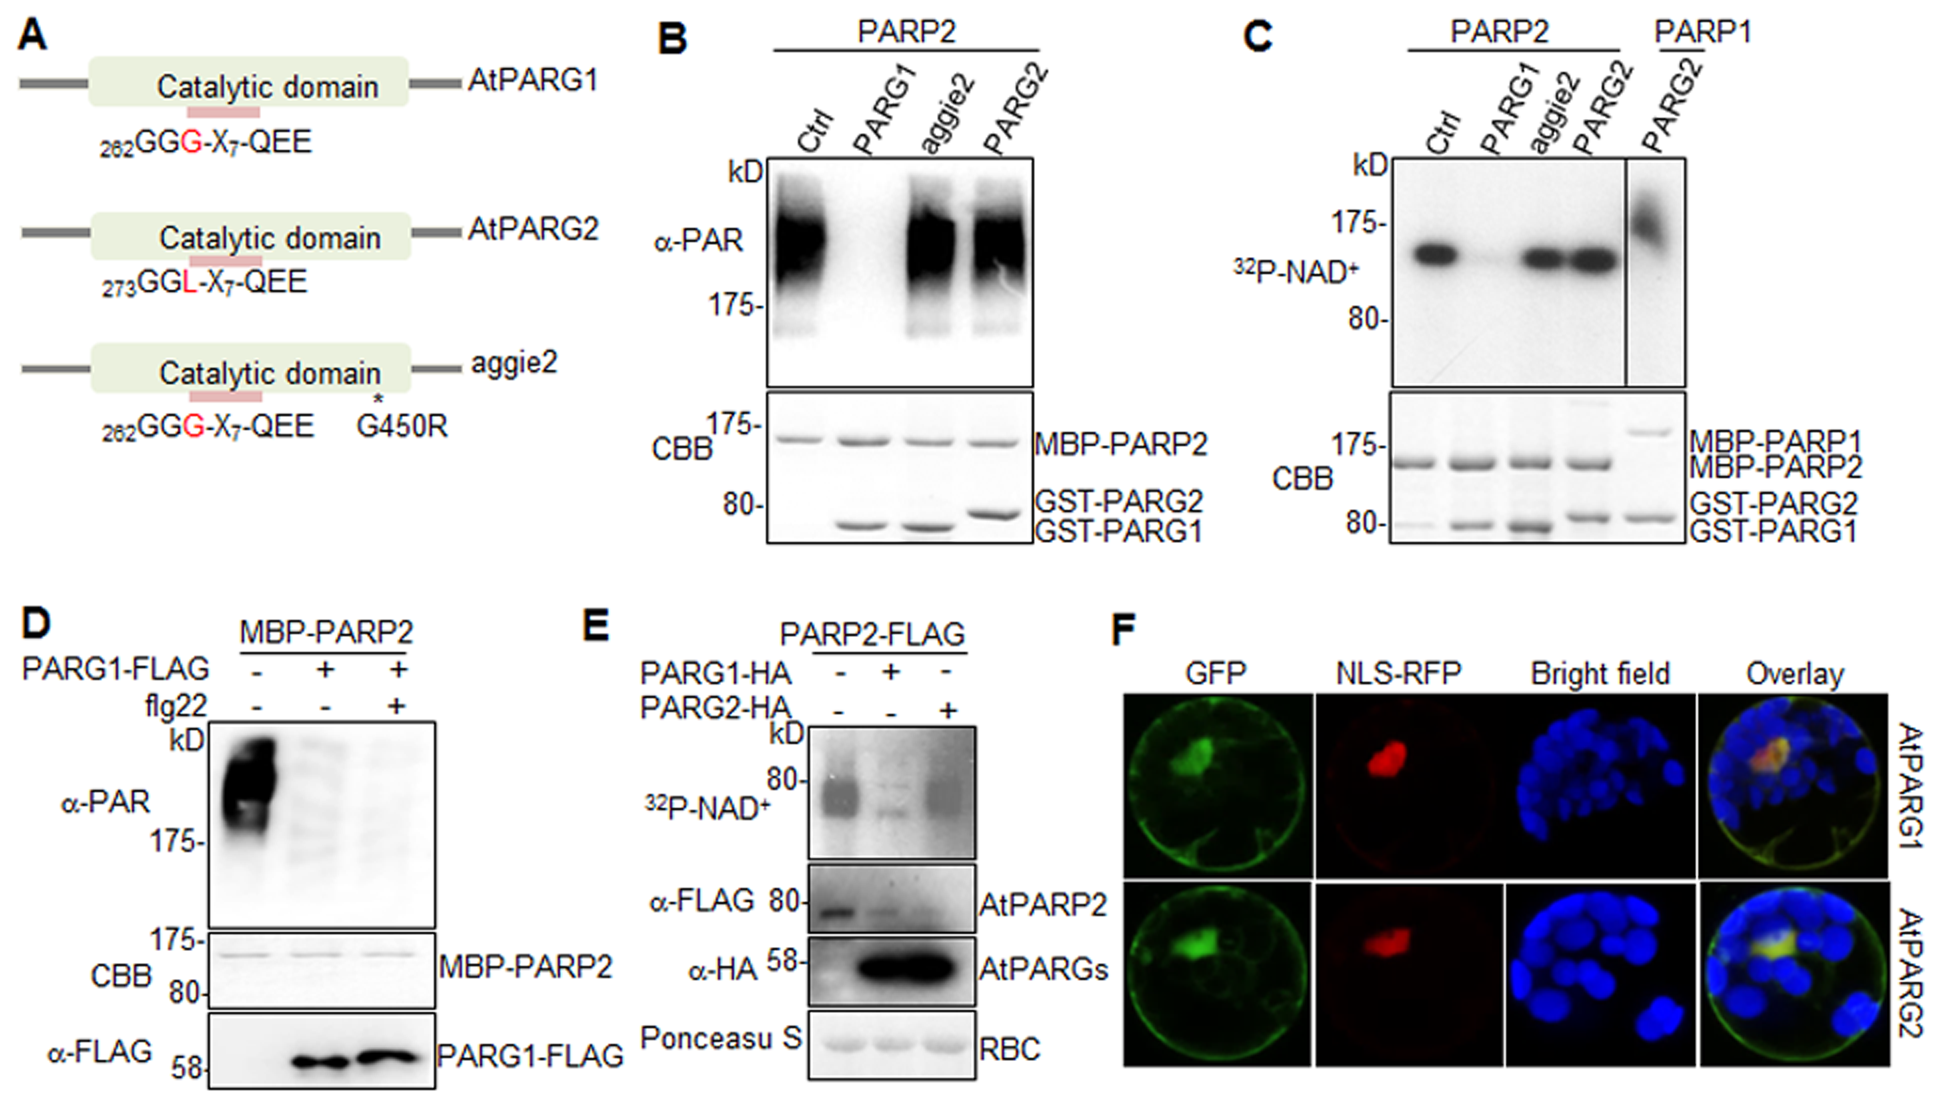 AtPARG1, but not aggie2 or AtPARG2, has poly(ADP-ribose) glycohydrolase activity.